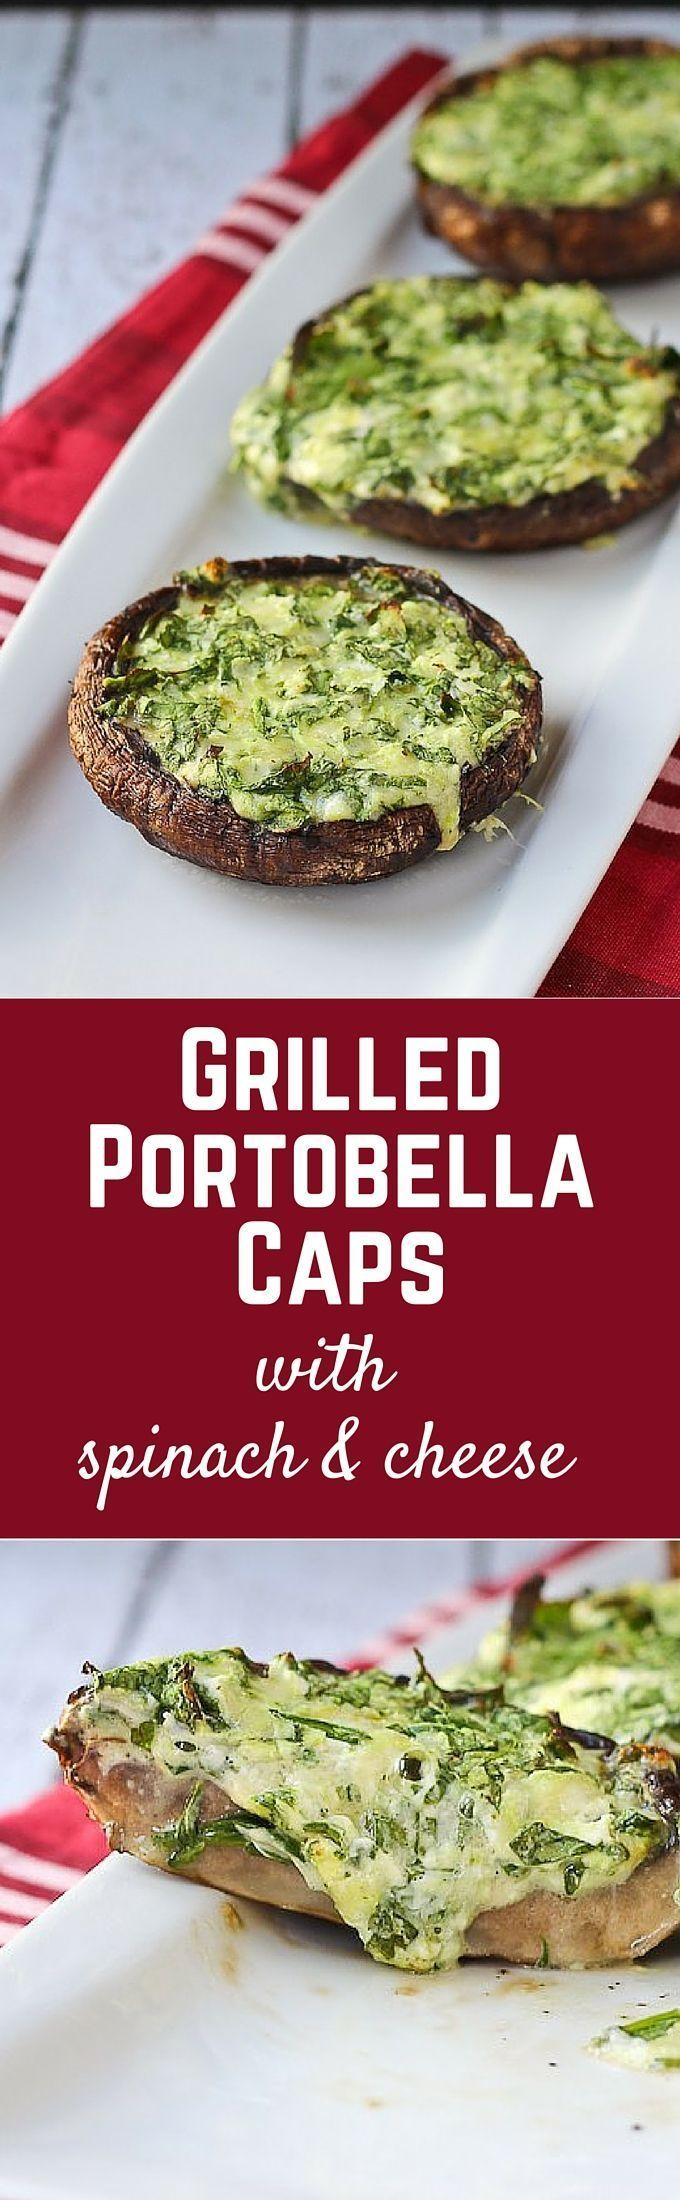 All Food and Drink: Grilled Portobella Mushrooms with Spinach and Chee...